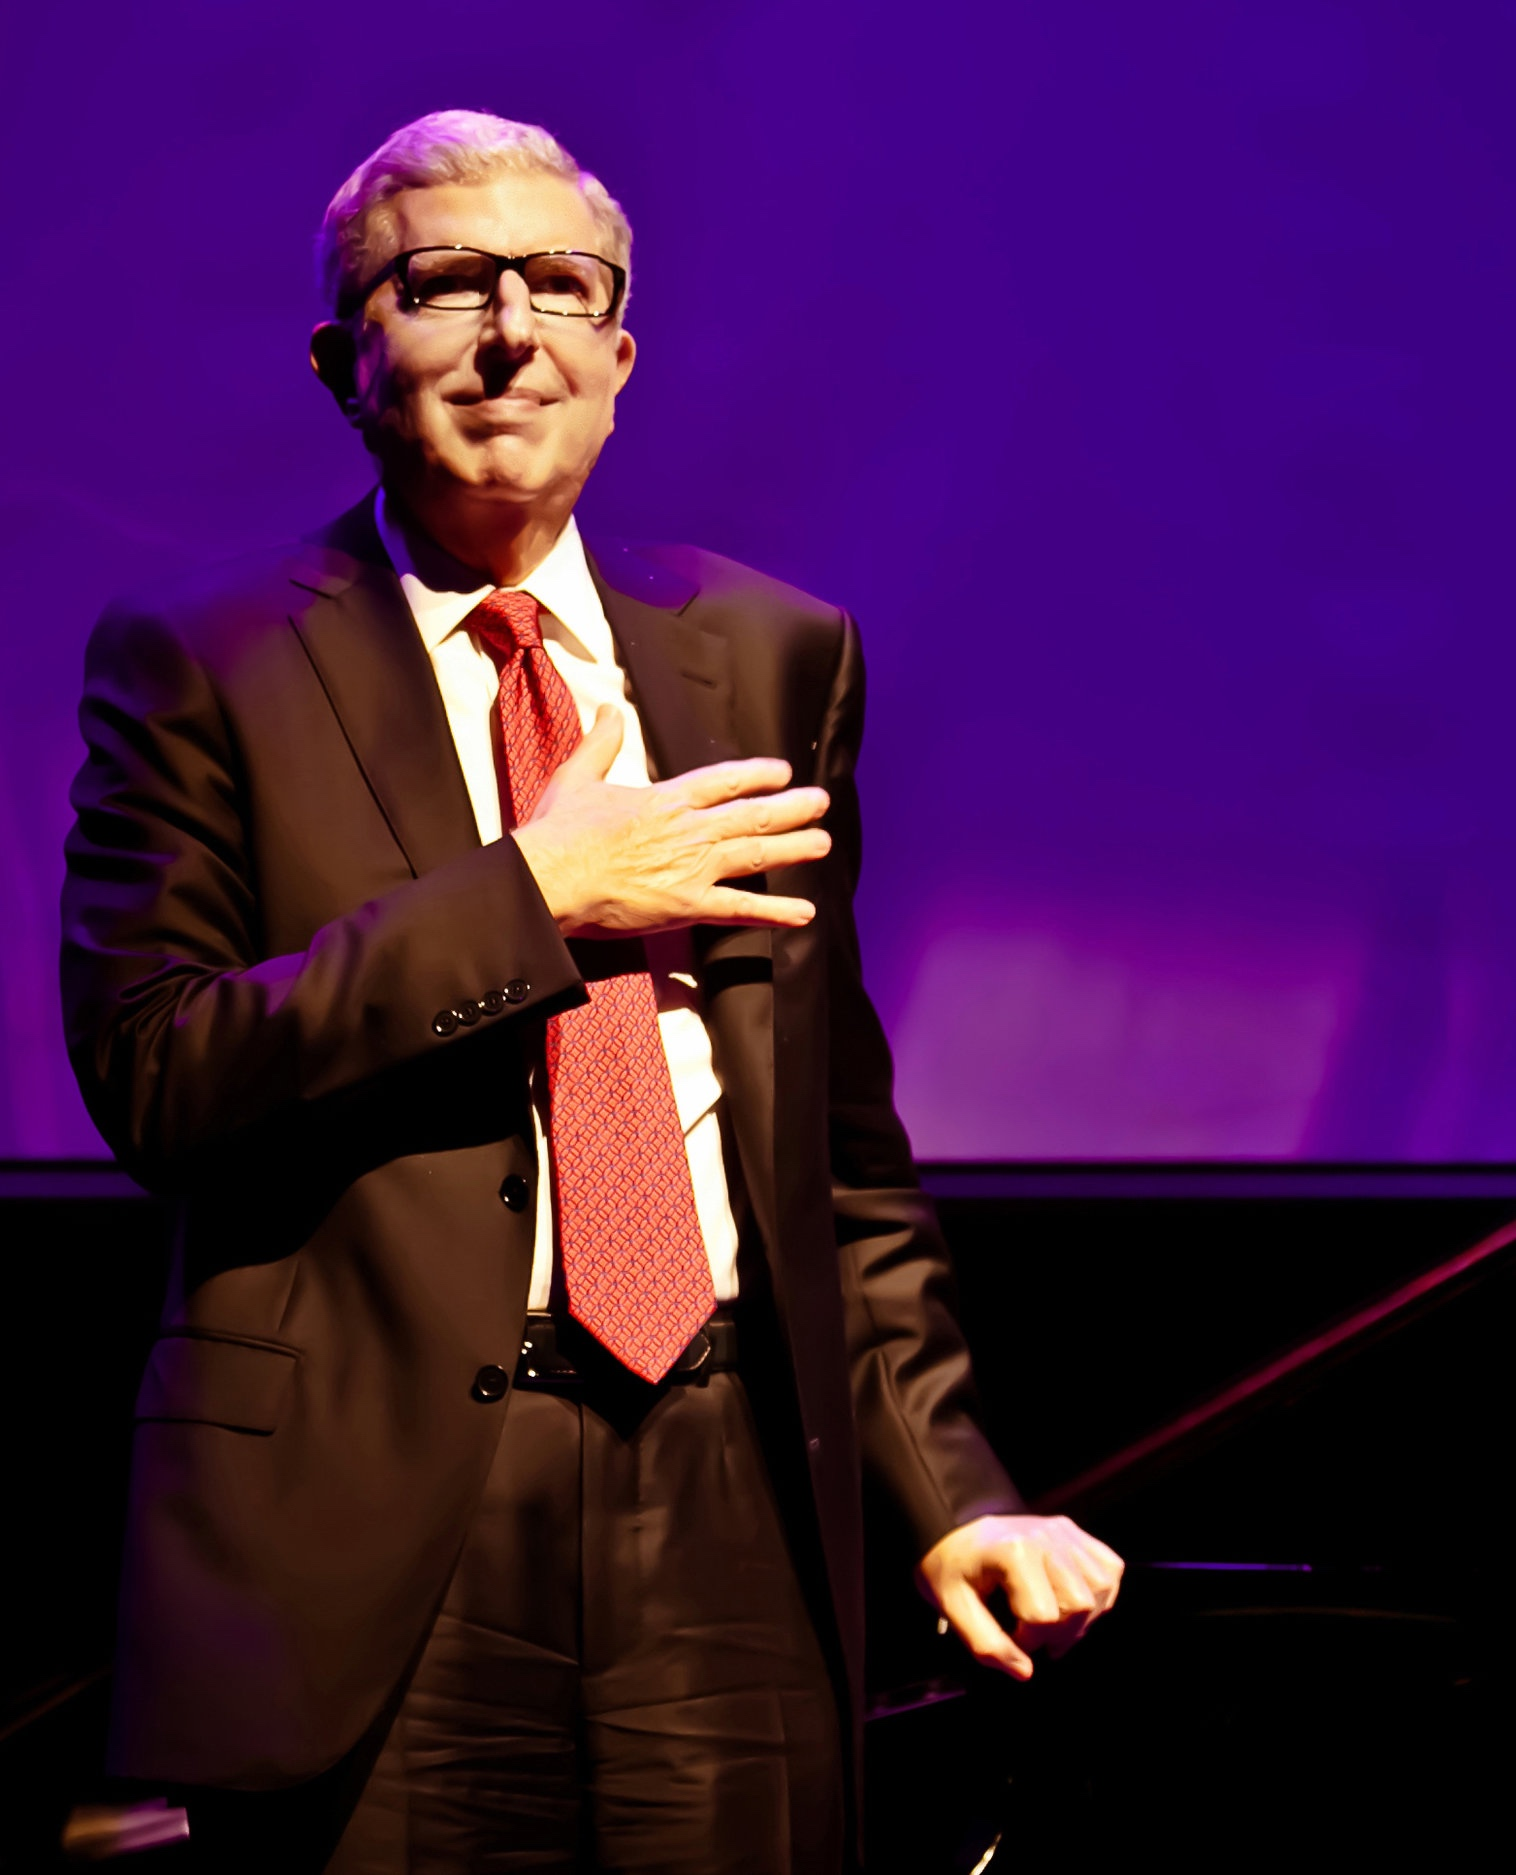 Marvin Hamlisch at the 2012 CINE Awards Gala, where he announced the creation of a film scoring contest for emerging composers. Photo:    Inbal More Photography